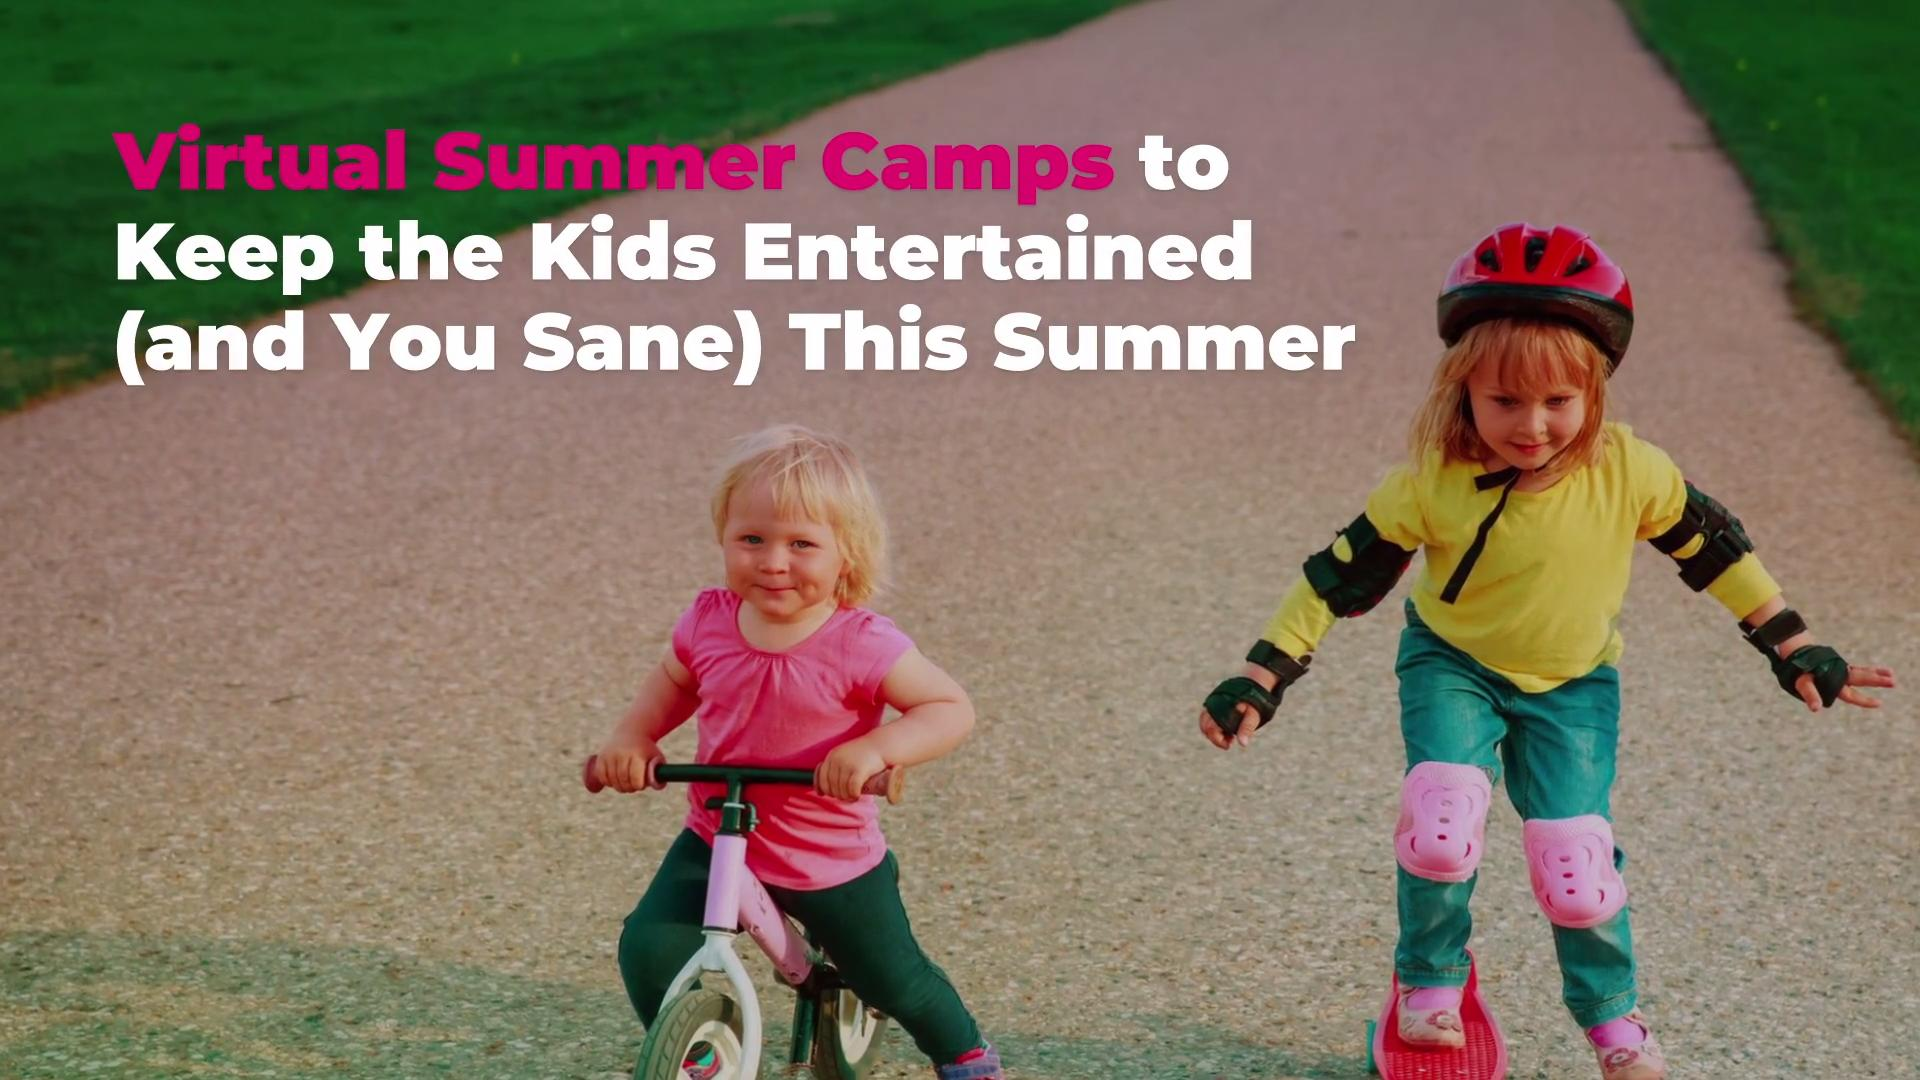 22 Virtual Summer Camps For Kids For Summer 2020 Real Simple